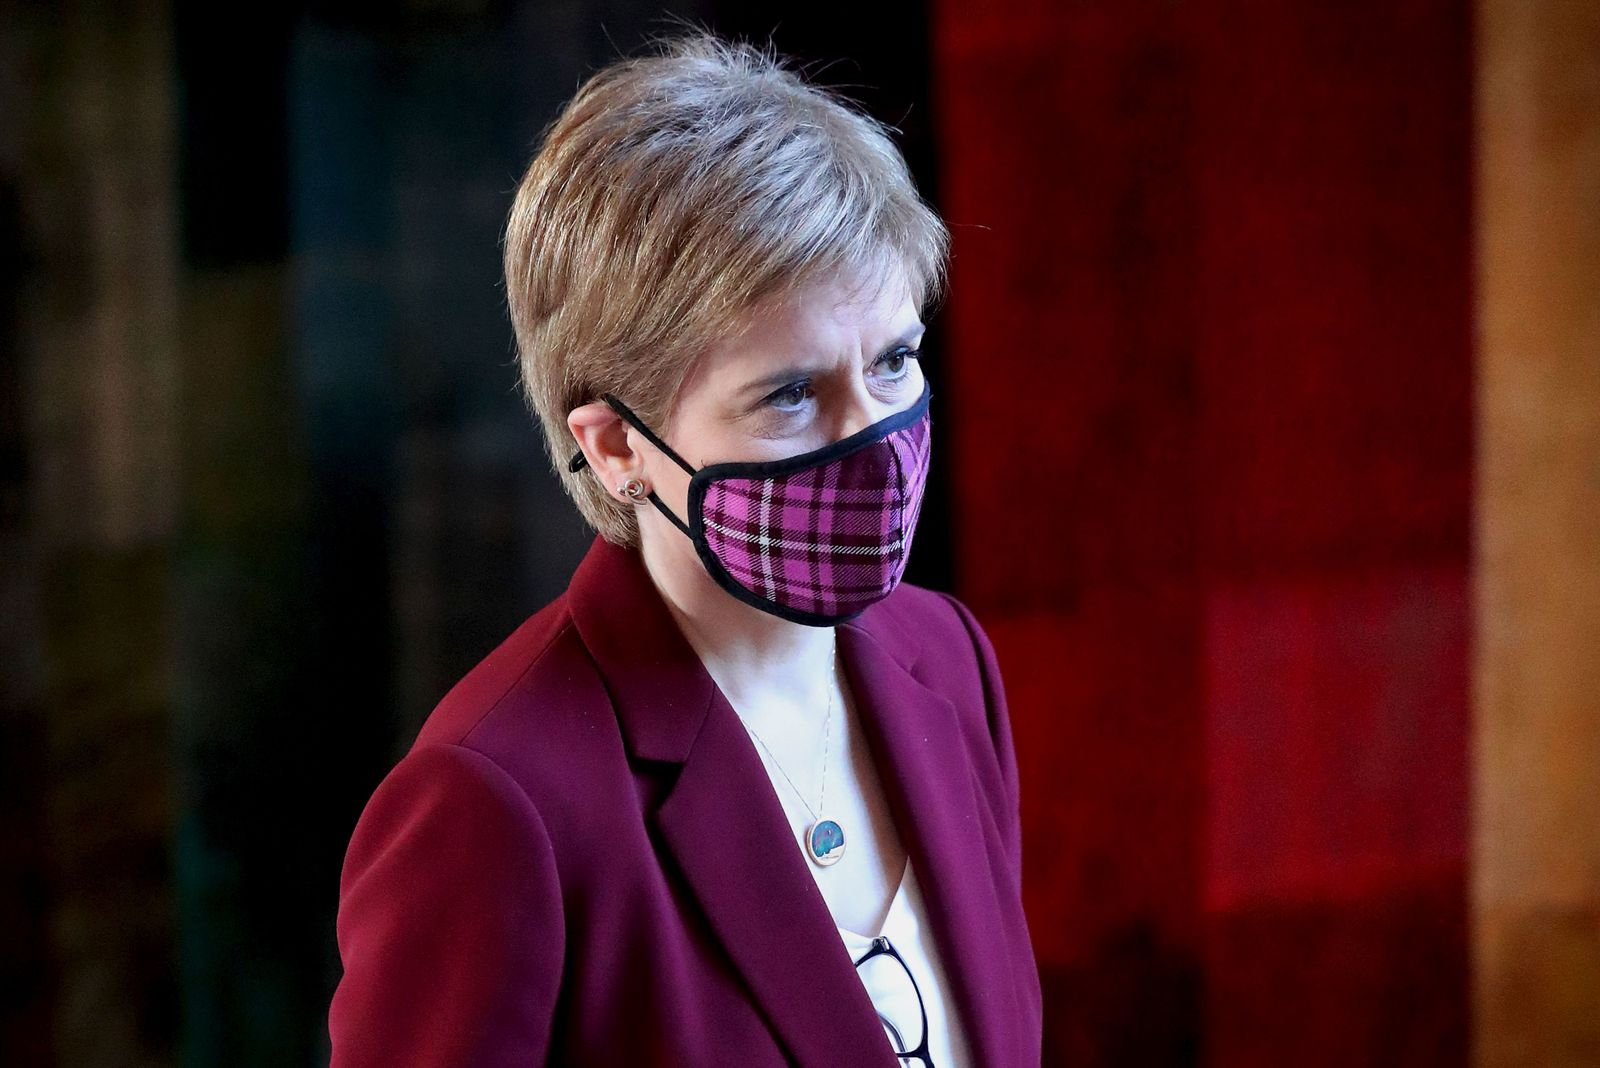 BRITAIN-SCOTLAND-POLITICS-HEALTH-VIRUS